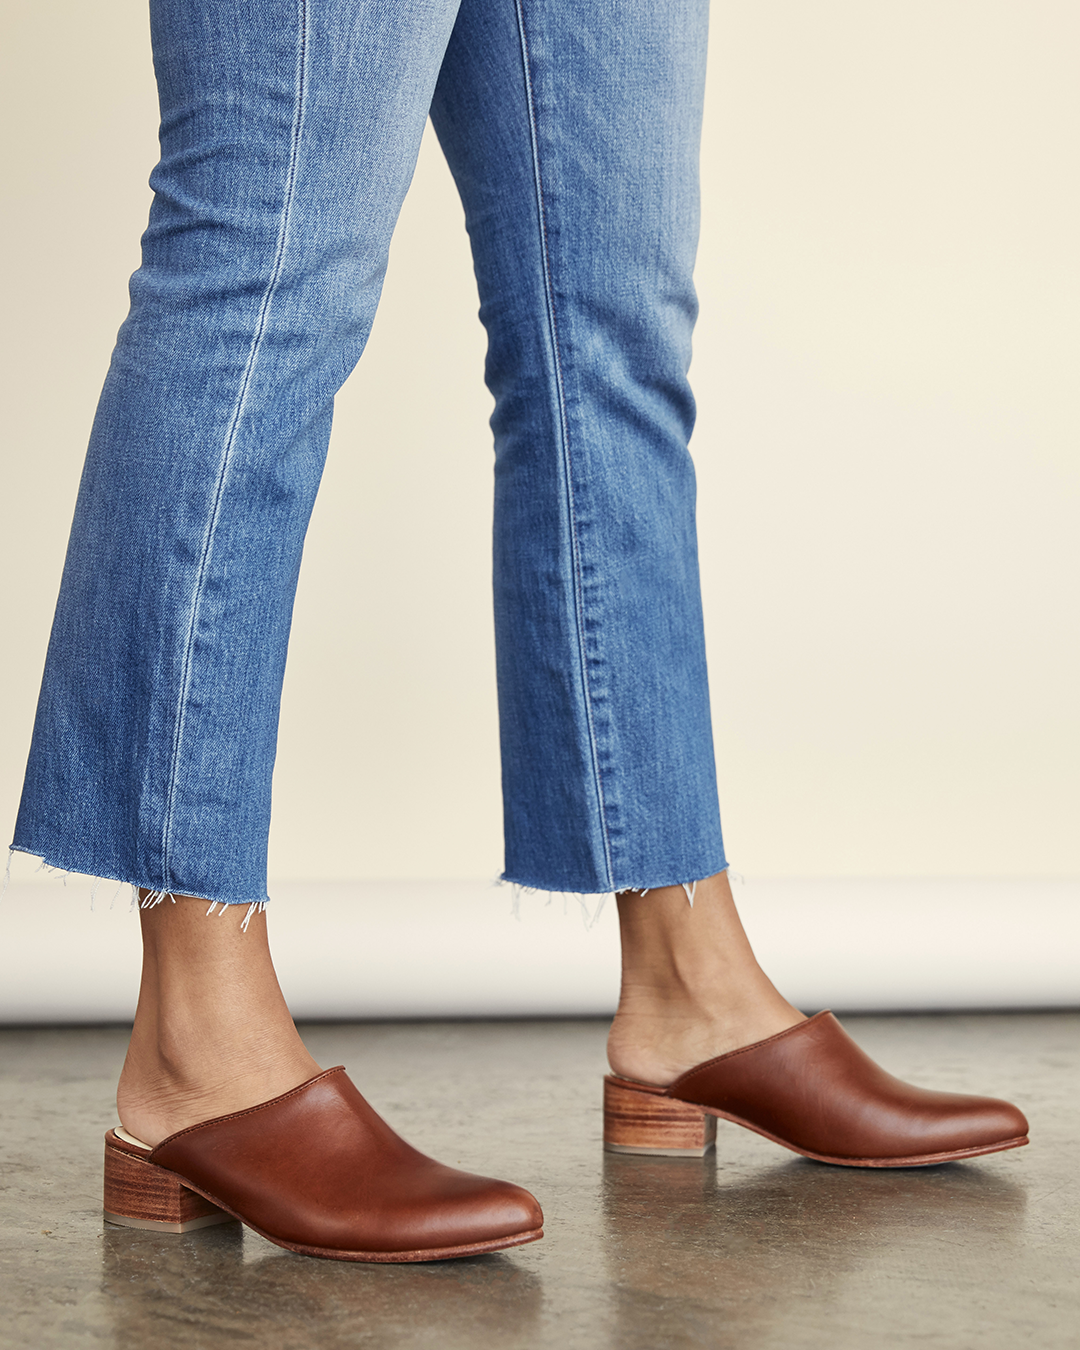 Model wearing the brown leather mules with low wooden heels